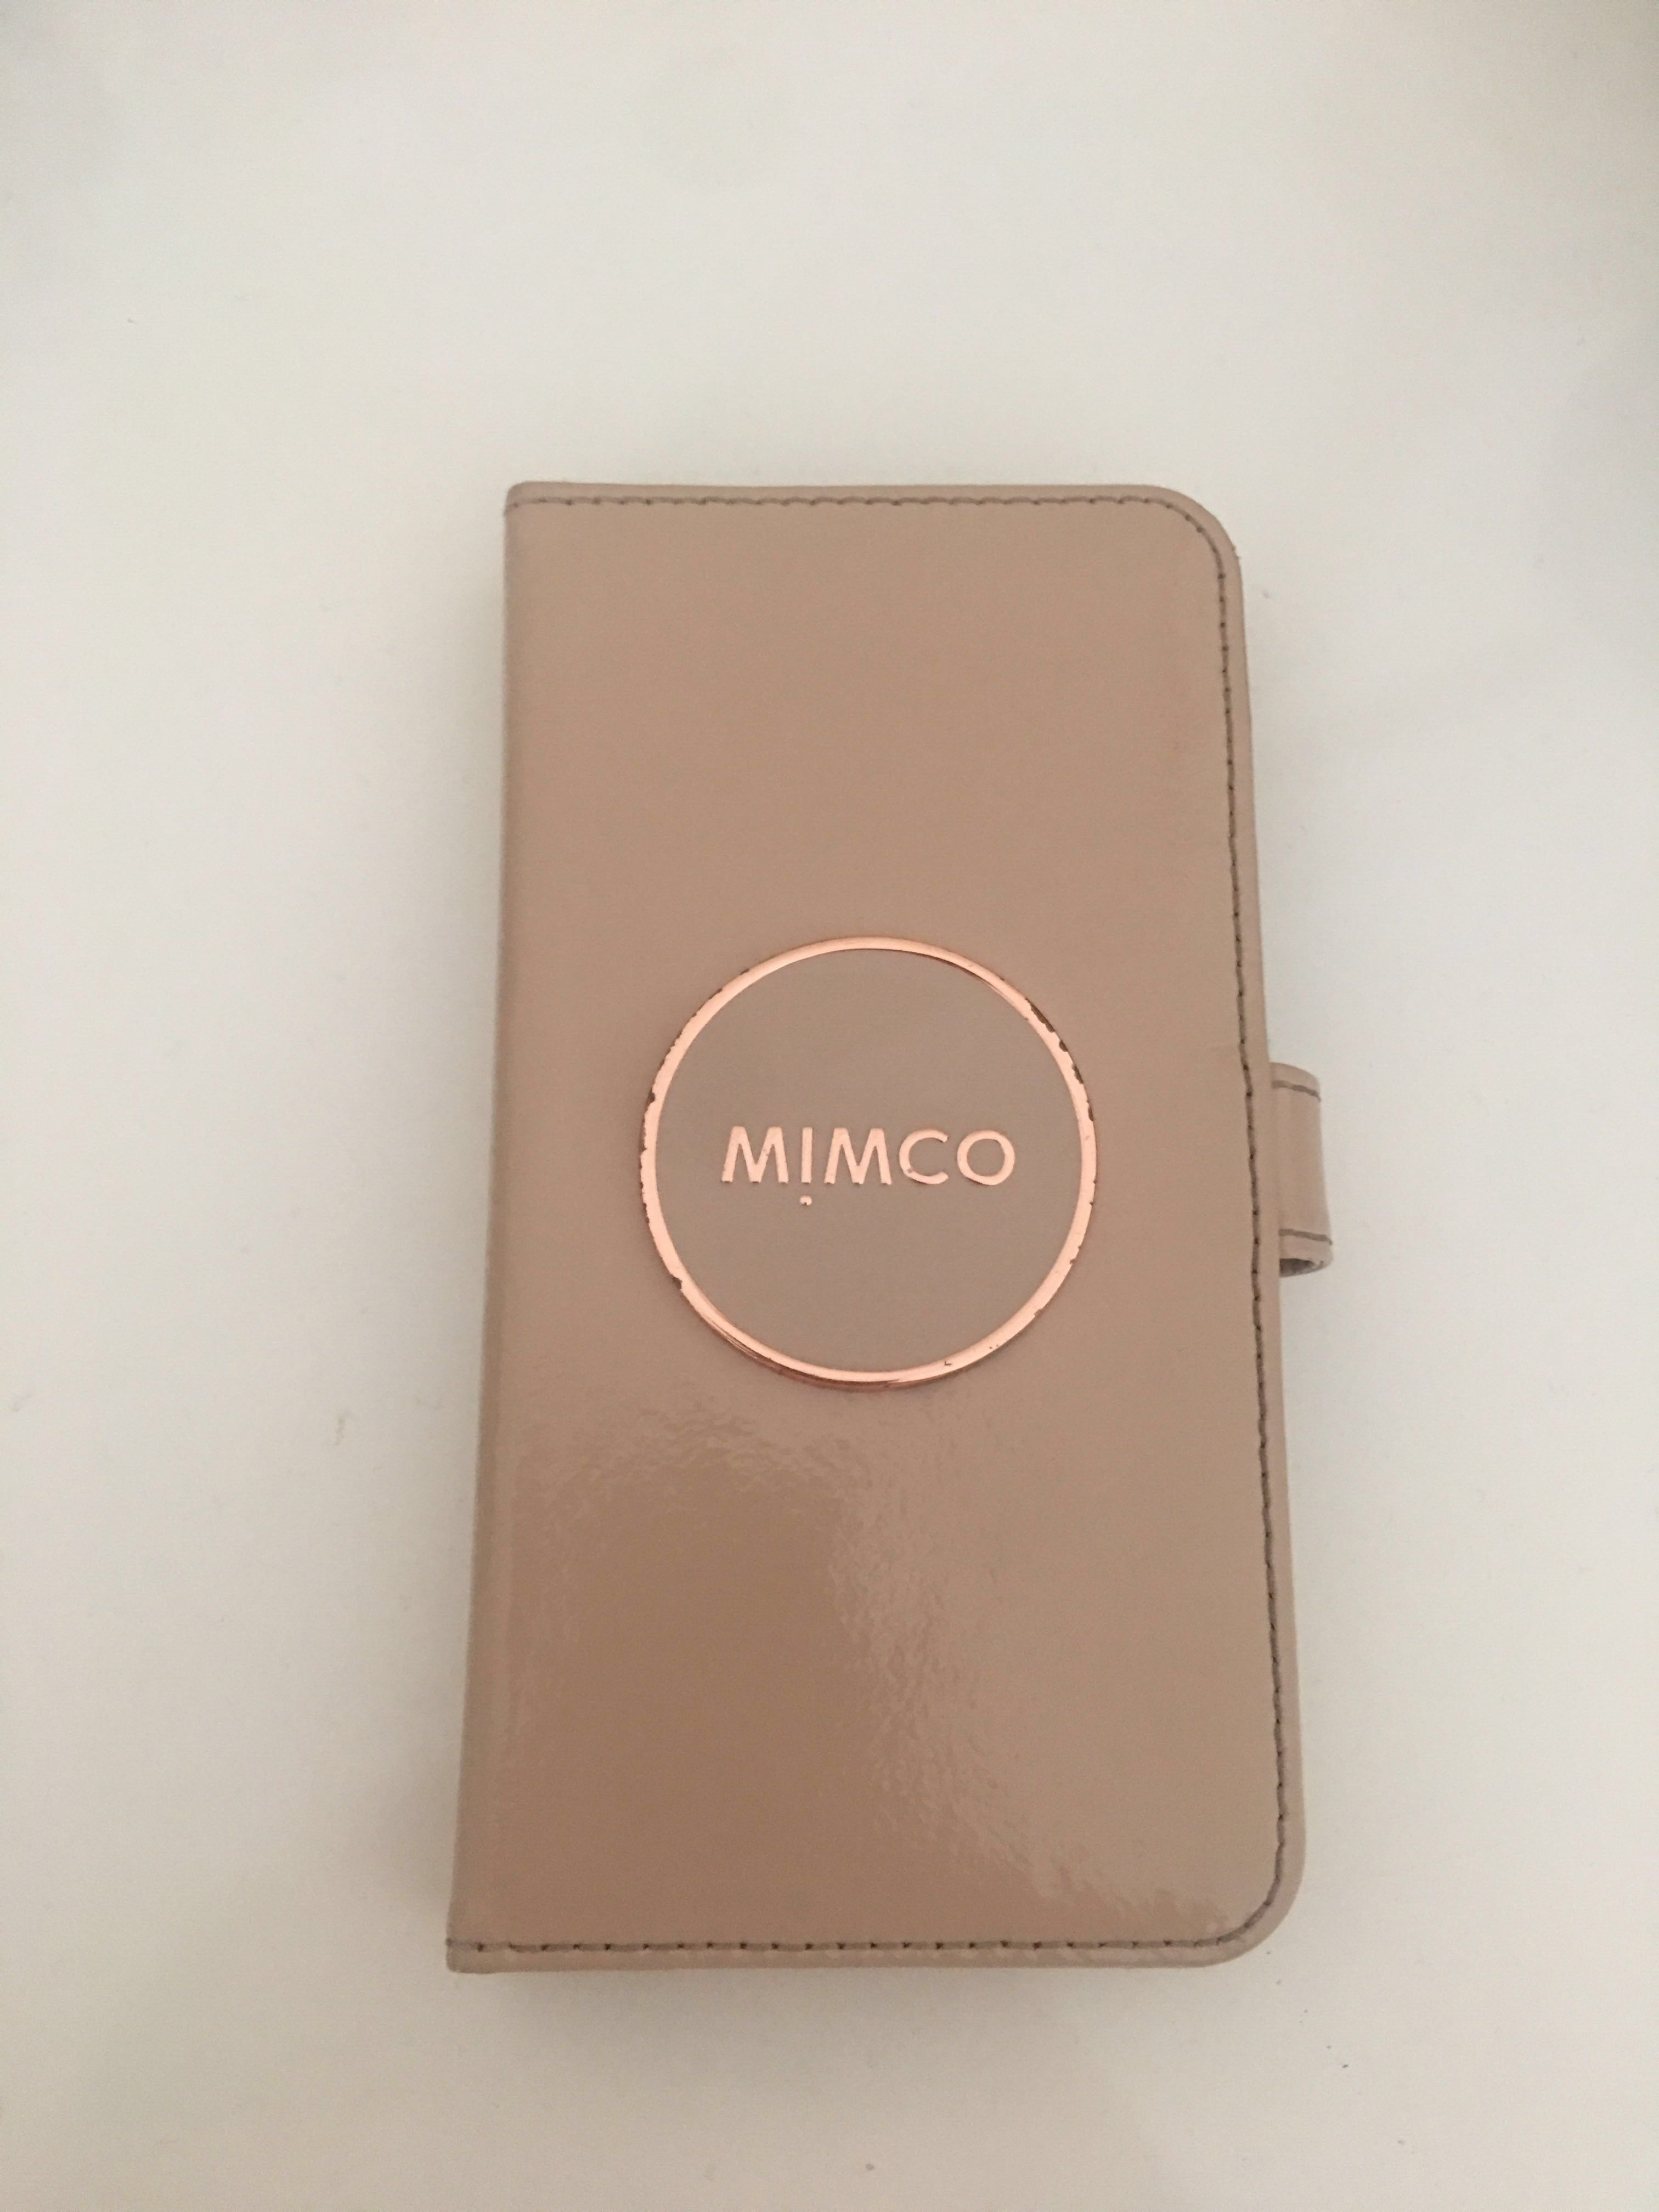 on sale 94c7f 5df4a Mimco Phone Case iPhone 6s Plus, Electronics, Mobile & Tablet ...